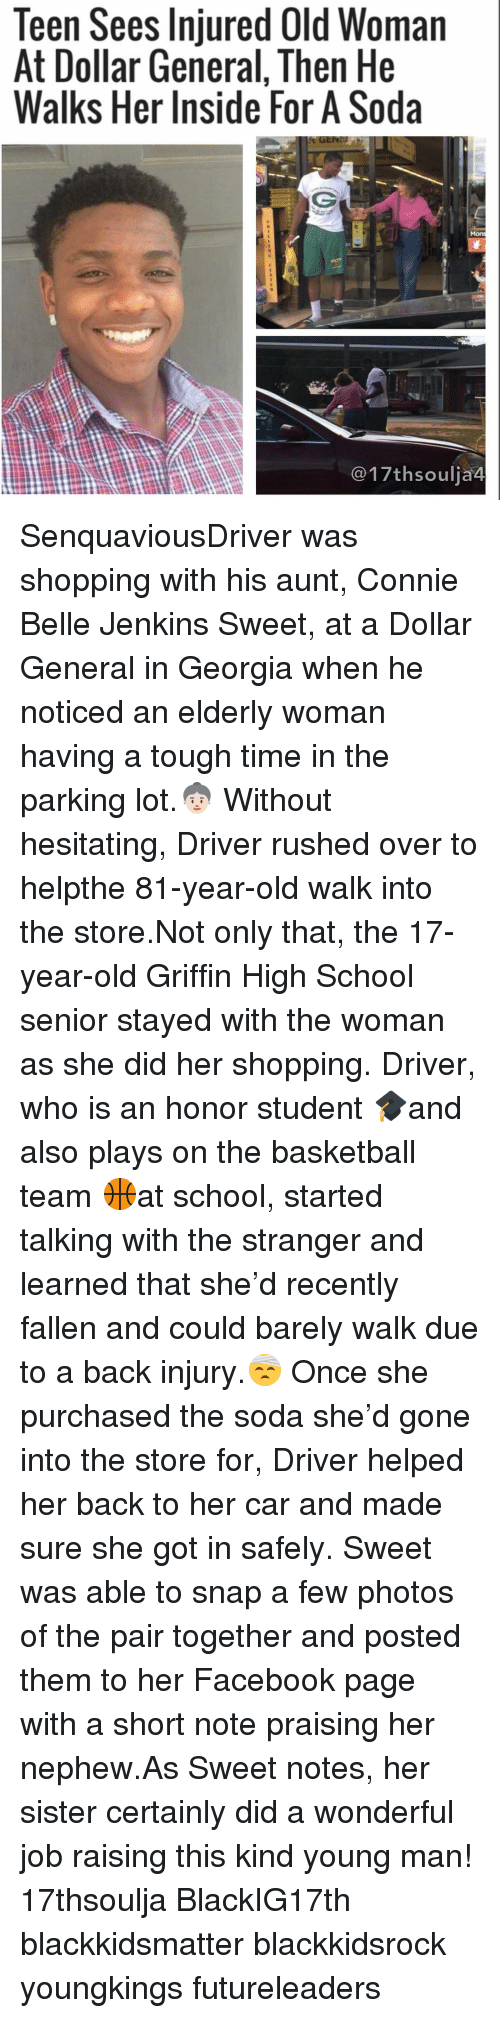 dollar general: Teen Sees Injured Old Woman  At Dollar General, Then He  Walks Her Inside For A Soda  17th soulia4 SenquaviousDriver was shopping with his aunt, Connie Belle Jenkins Sweet, at a Dollar General in Georgia when he noticed an elderly woman having a tough time in the parking lot.👵🏻 Without hesitating, Driver rushed over to helpthe 81-year-old walk into the store.Not only that, the 17-year-old Griffin High School senior stayed with the woman as she did her shopping. Driver, who is an honor student 🎓and also plays on the basketball team 🏀at school, started talking with the stranger and learned that she'd recently fallen and could barely walk due to a back injury.🤕 Once she purchased the soda she'd gone into the store for, Driver helped her back to her car and made sure she got in safely. Sweet was able to snap a few photos of the pair together and posted them to her Facebook page with a short note praising her nephew.As Sweet notes, her sister certainly did a wonderful job raising this kind young man! 17thsoulja BlackIG17th blackkidsmatter blackkidsrock youngkings futureleaders